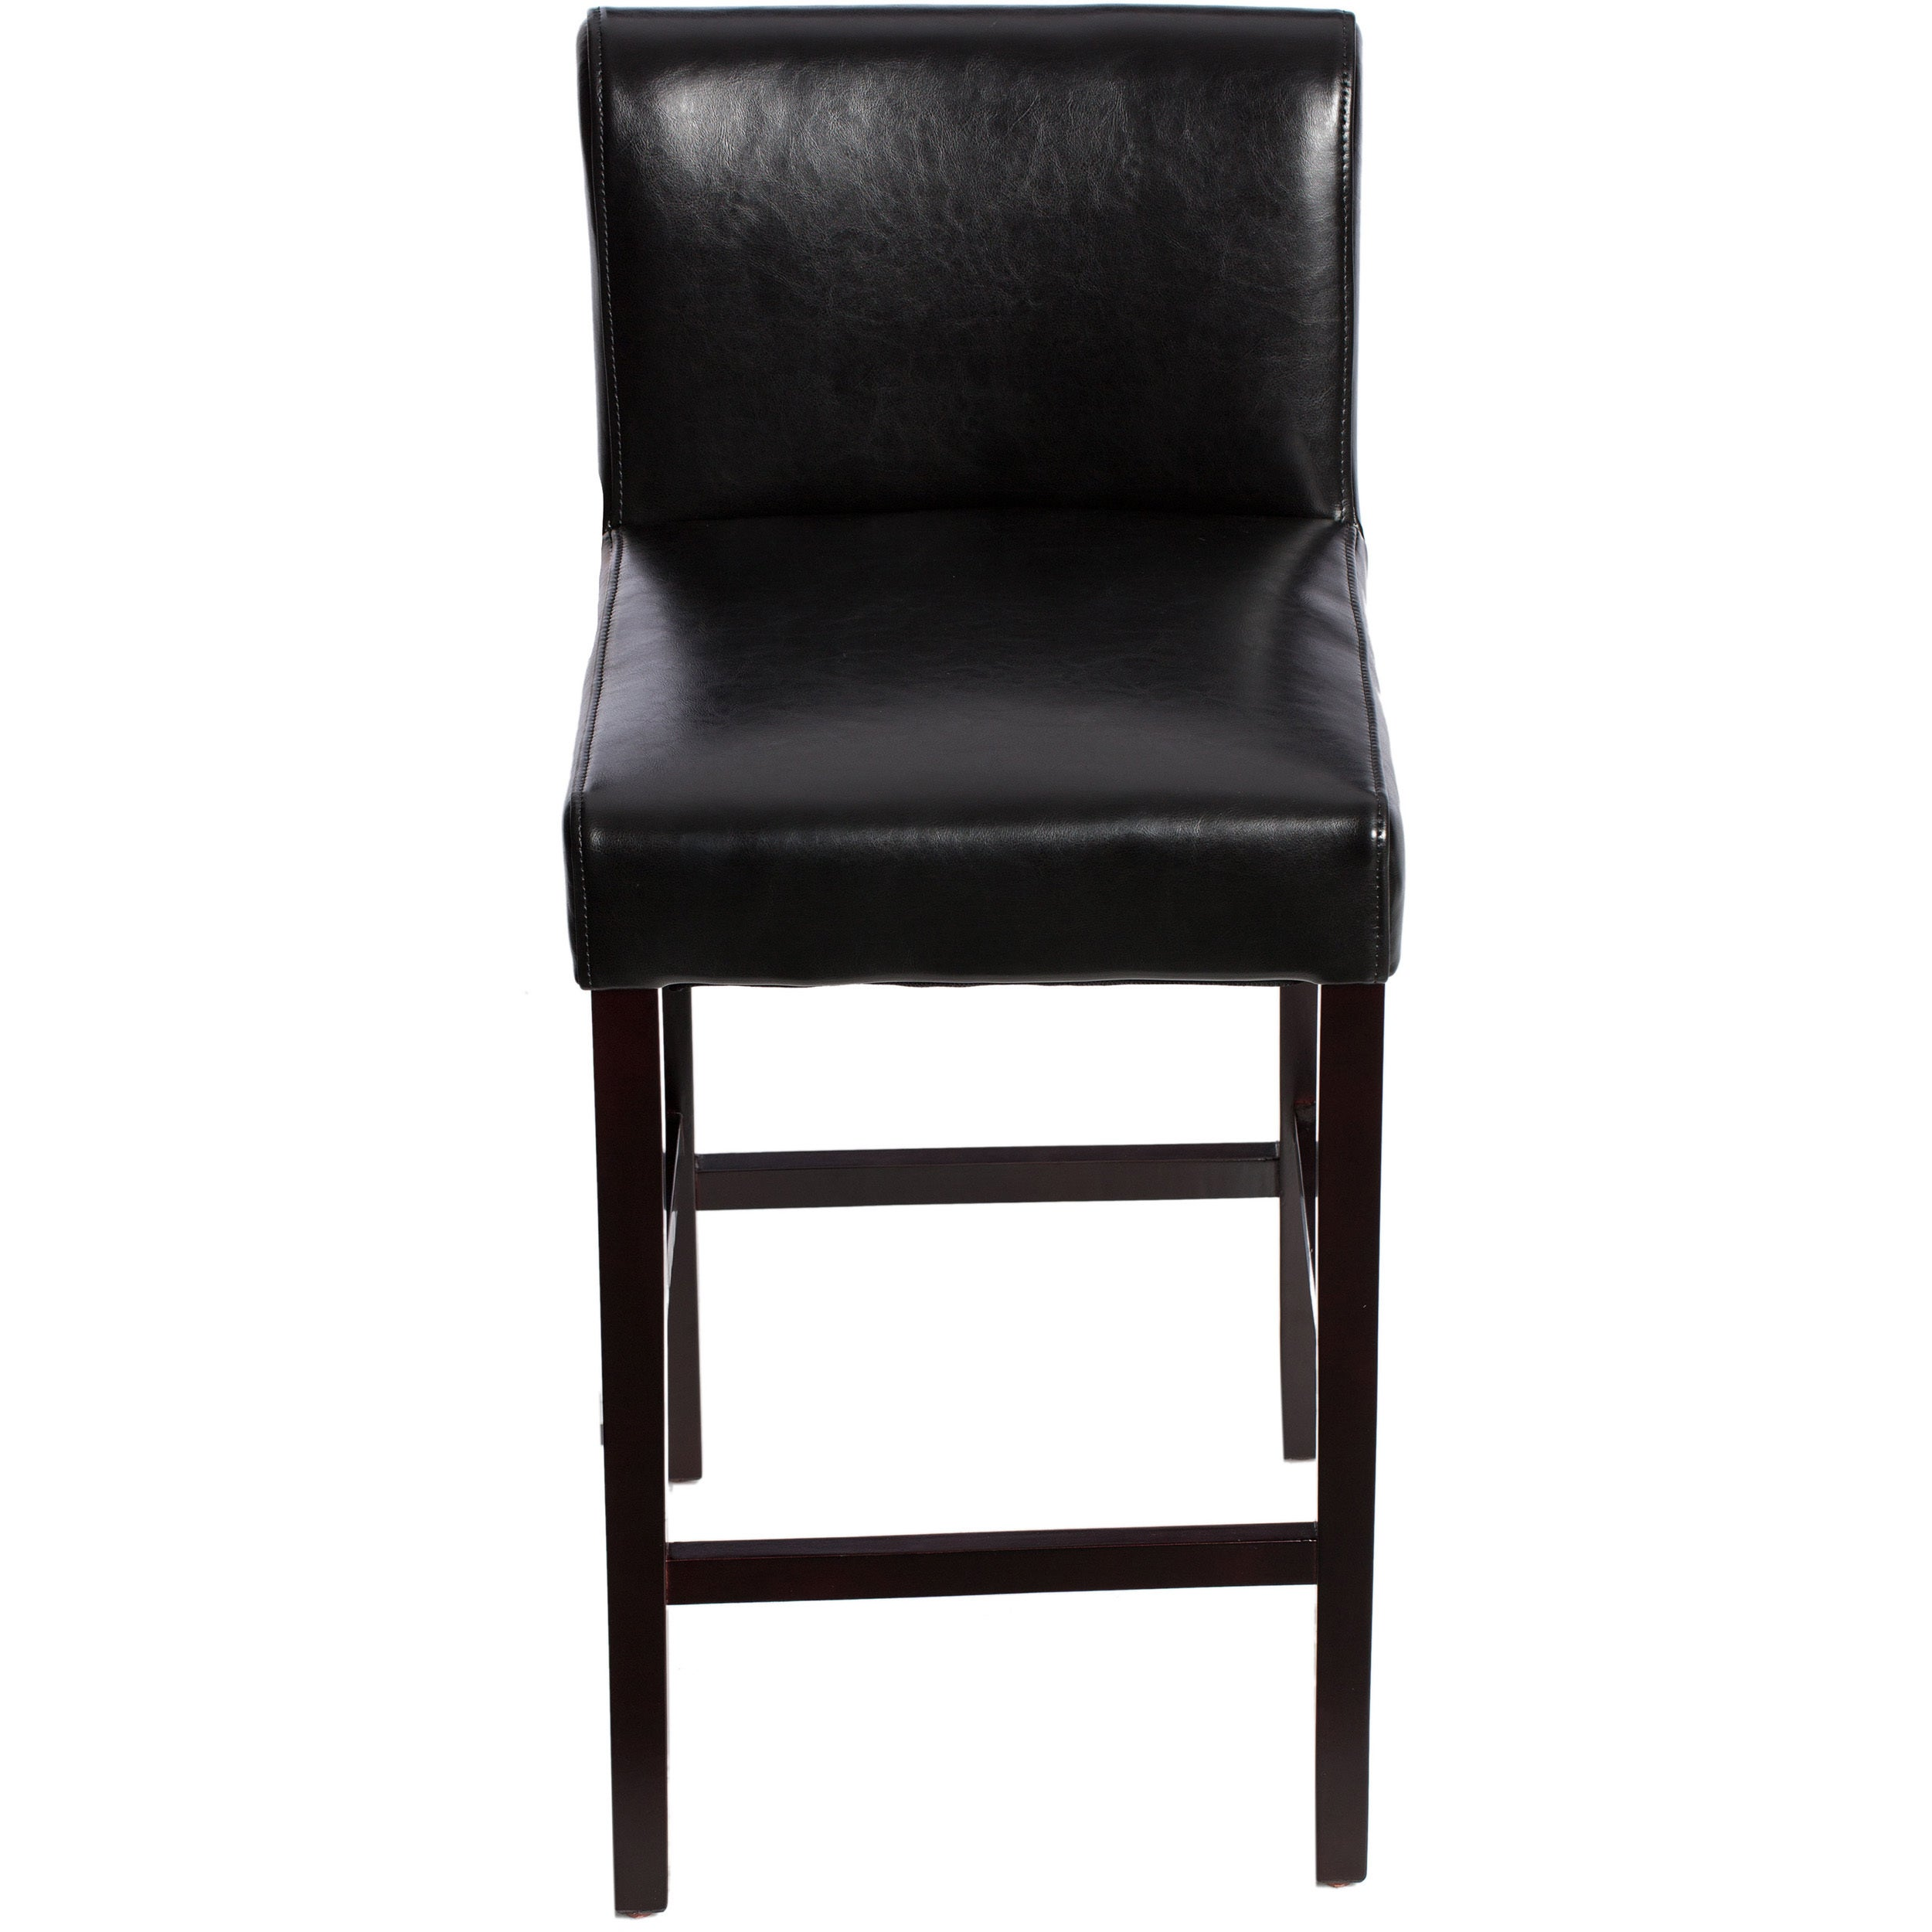 best counter expensive chair black of com height usa designsolutions chairs covers elegant new stools stool